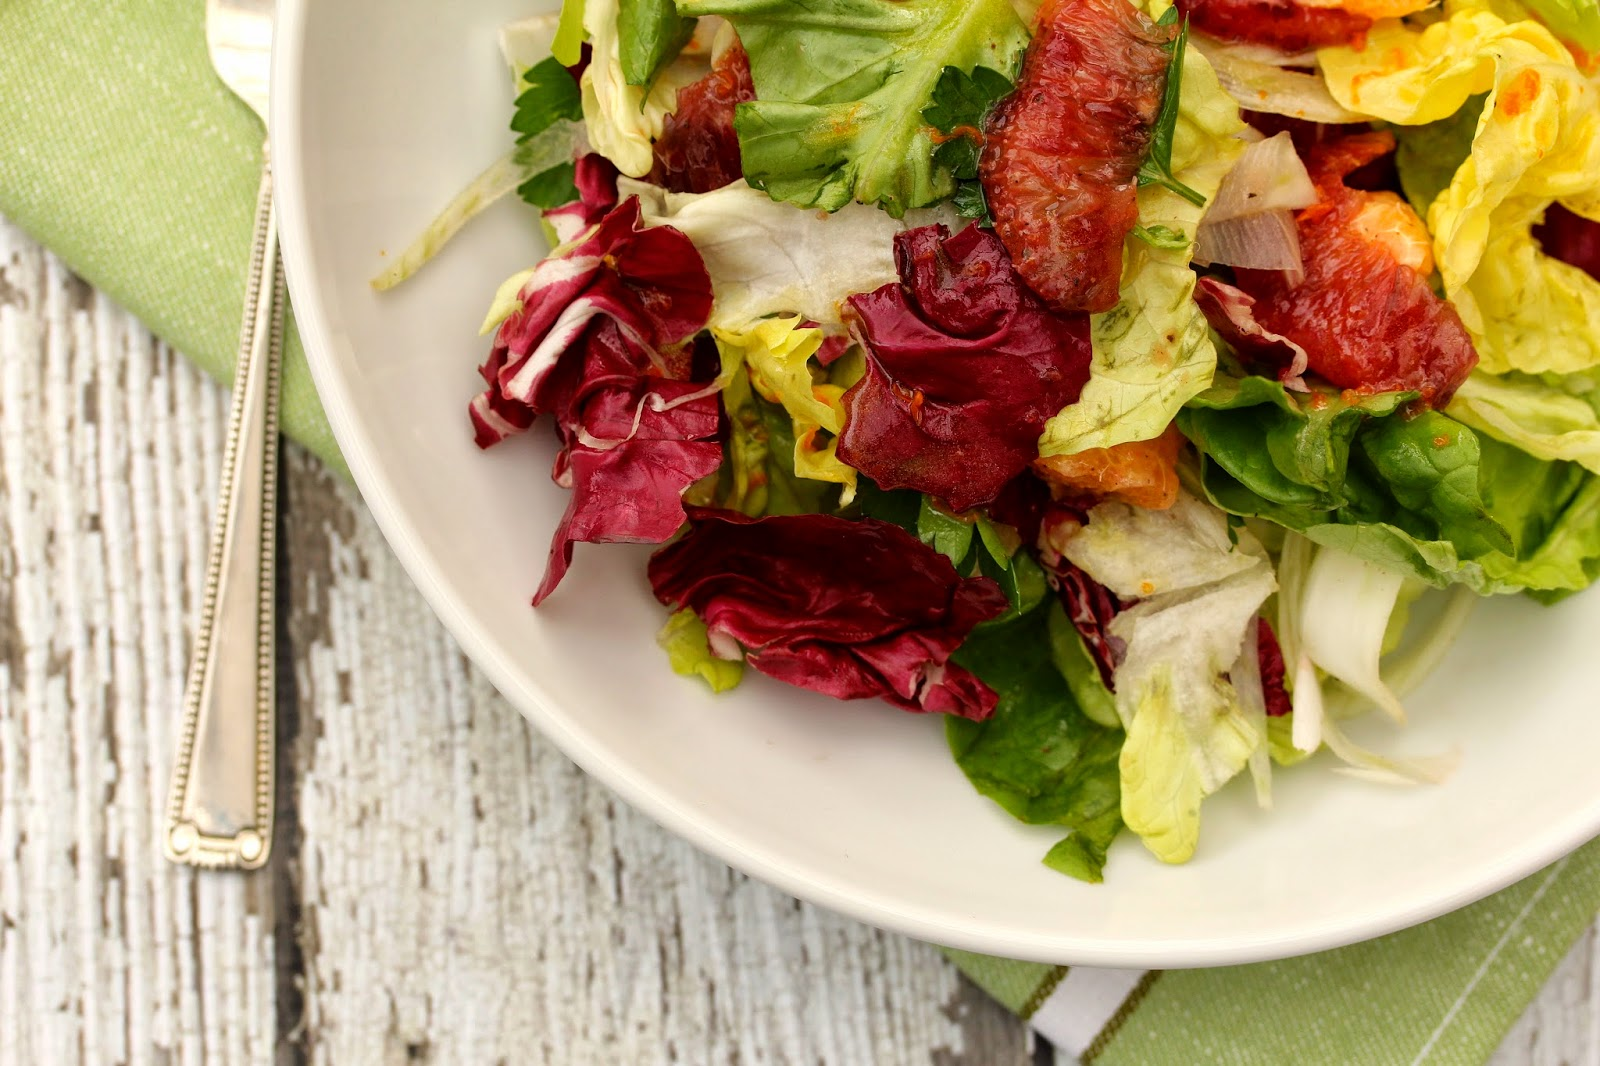 Blood Orange, Butter Lettuce, Radicchio, and Endive Salad with Fennel